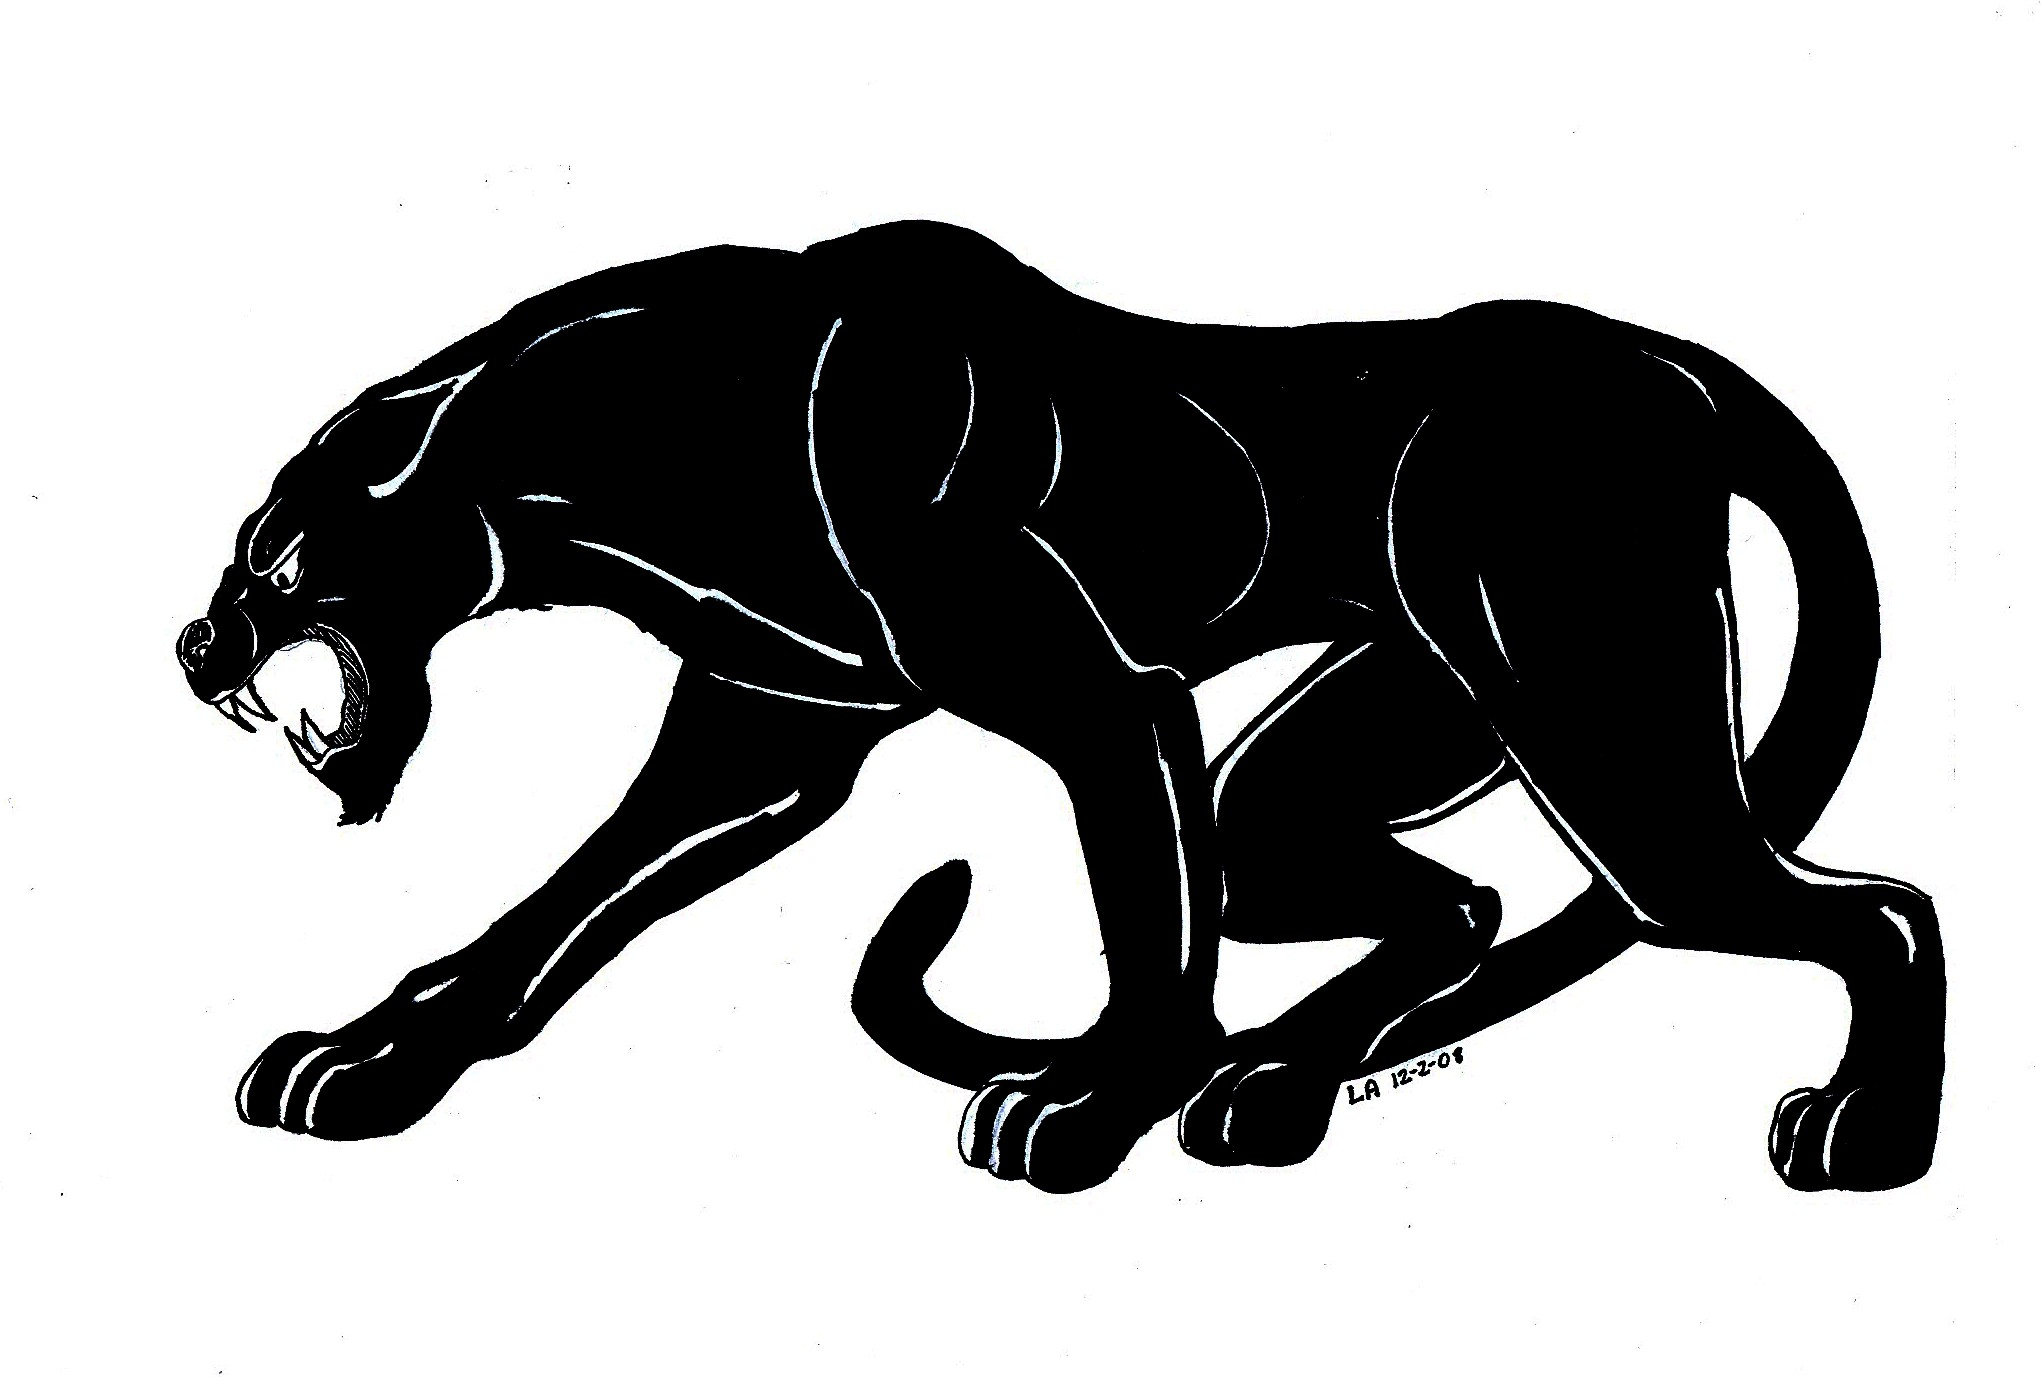 Drawn panther Savoronmorehead Panther Image Panther Top